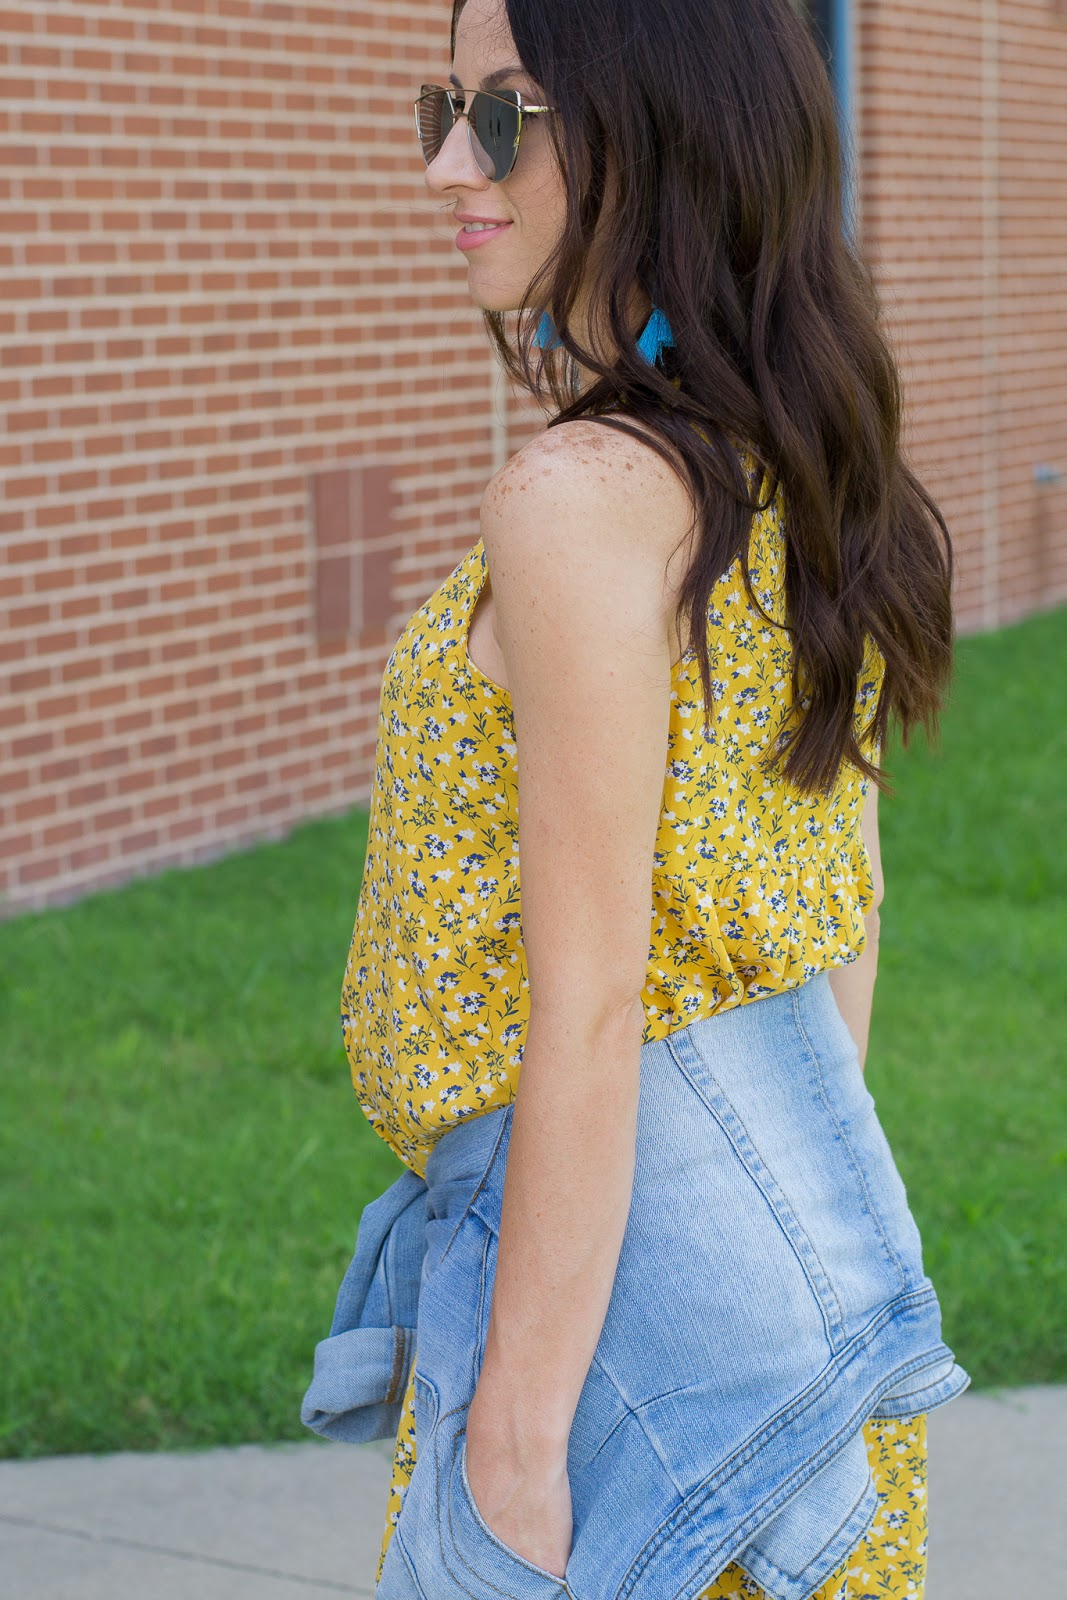 How to wear a denim jacket and summer dress